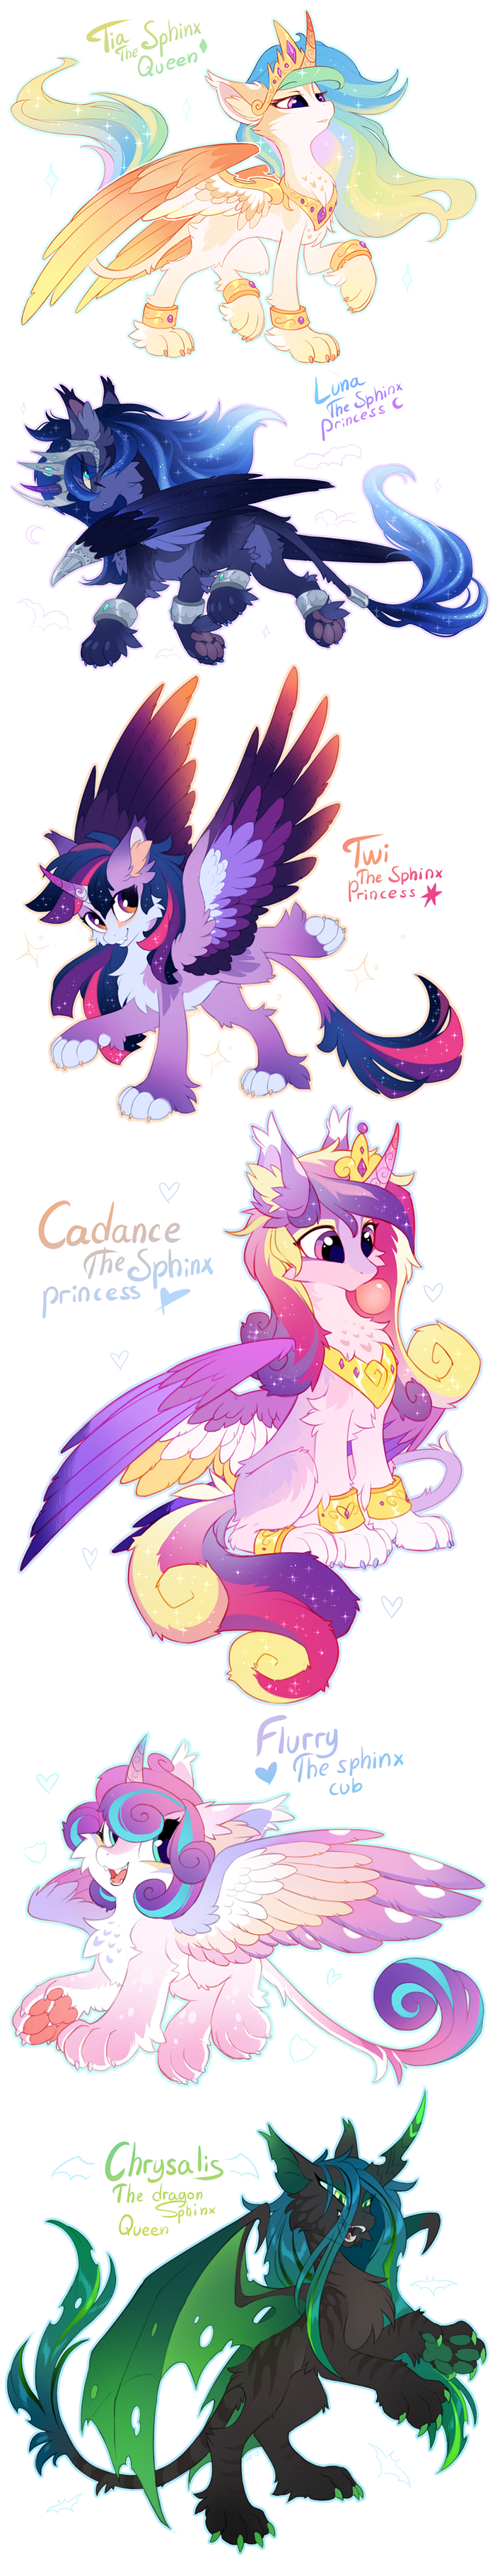 The Sphinx My Little Pony, Princess Celestia, Princess Luna, Princess Cadance, Flurry Heart, Queen Chrysalis, Hioshiru, Длиннопост